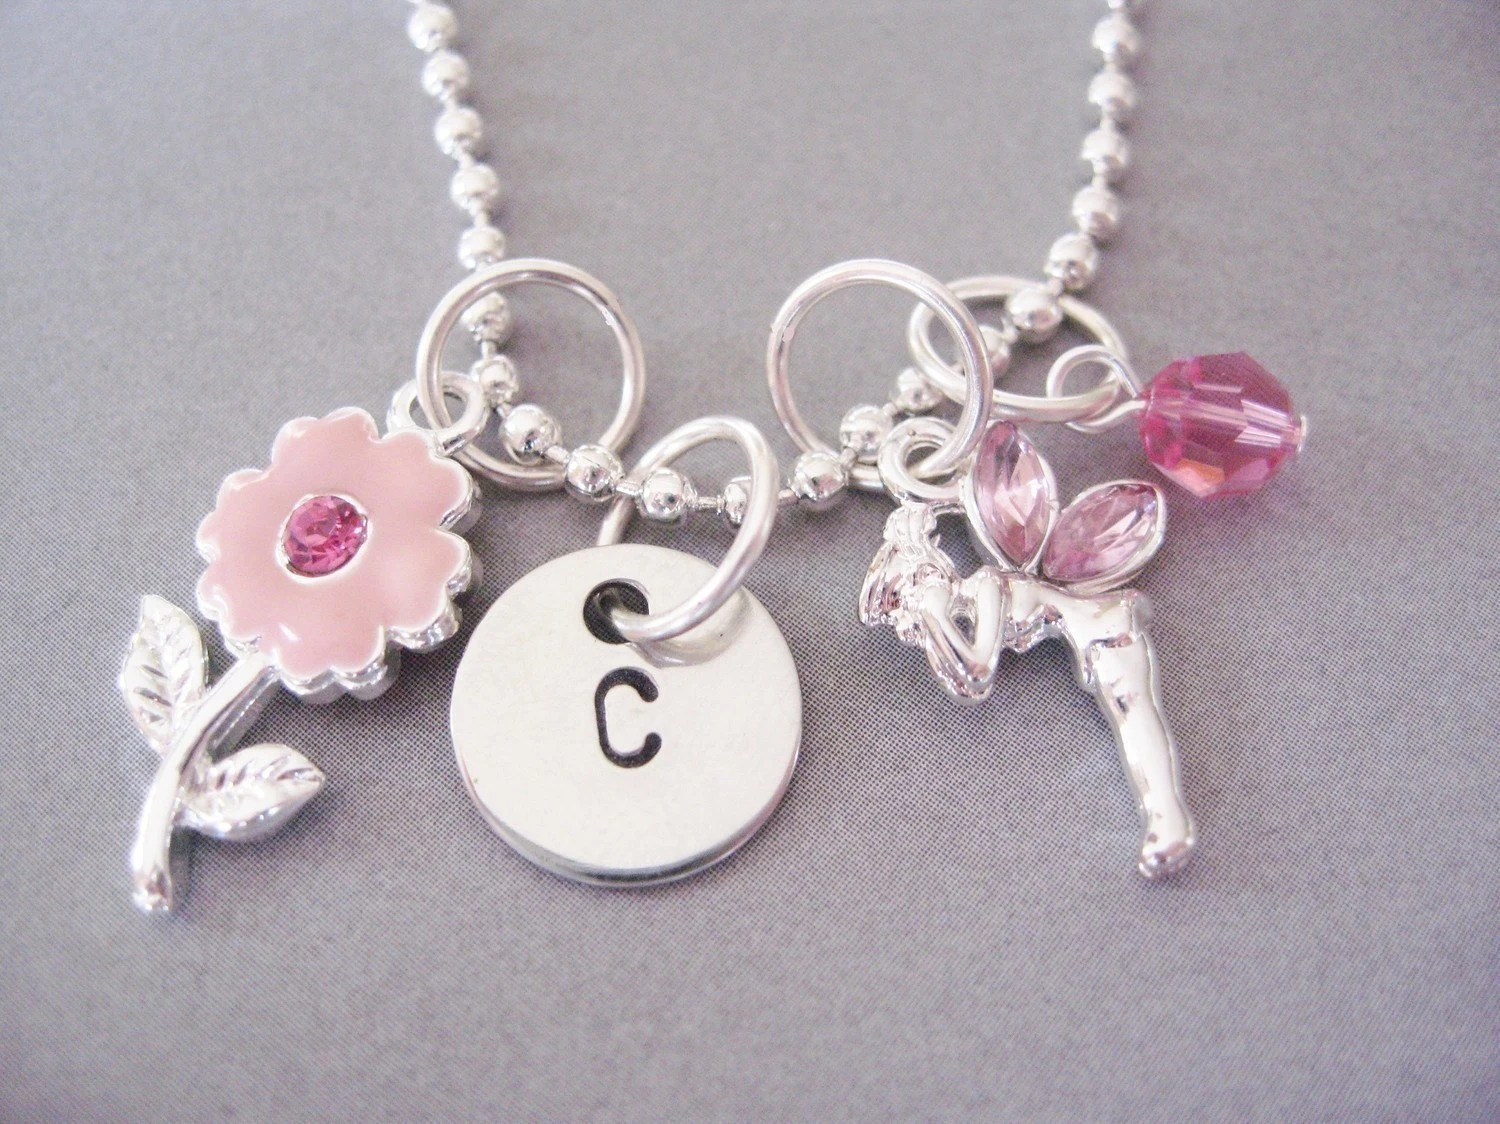 Personalized Jewelry gifts